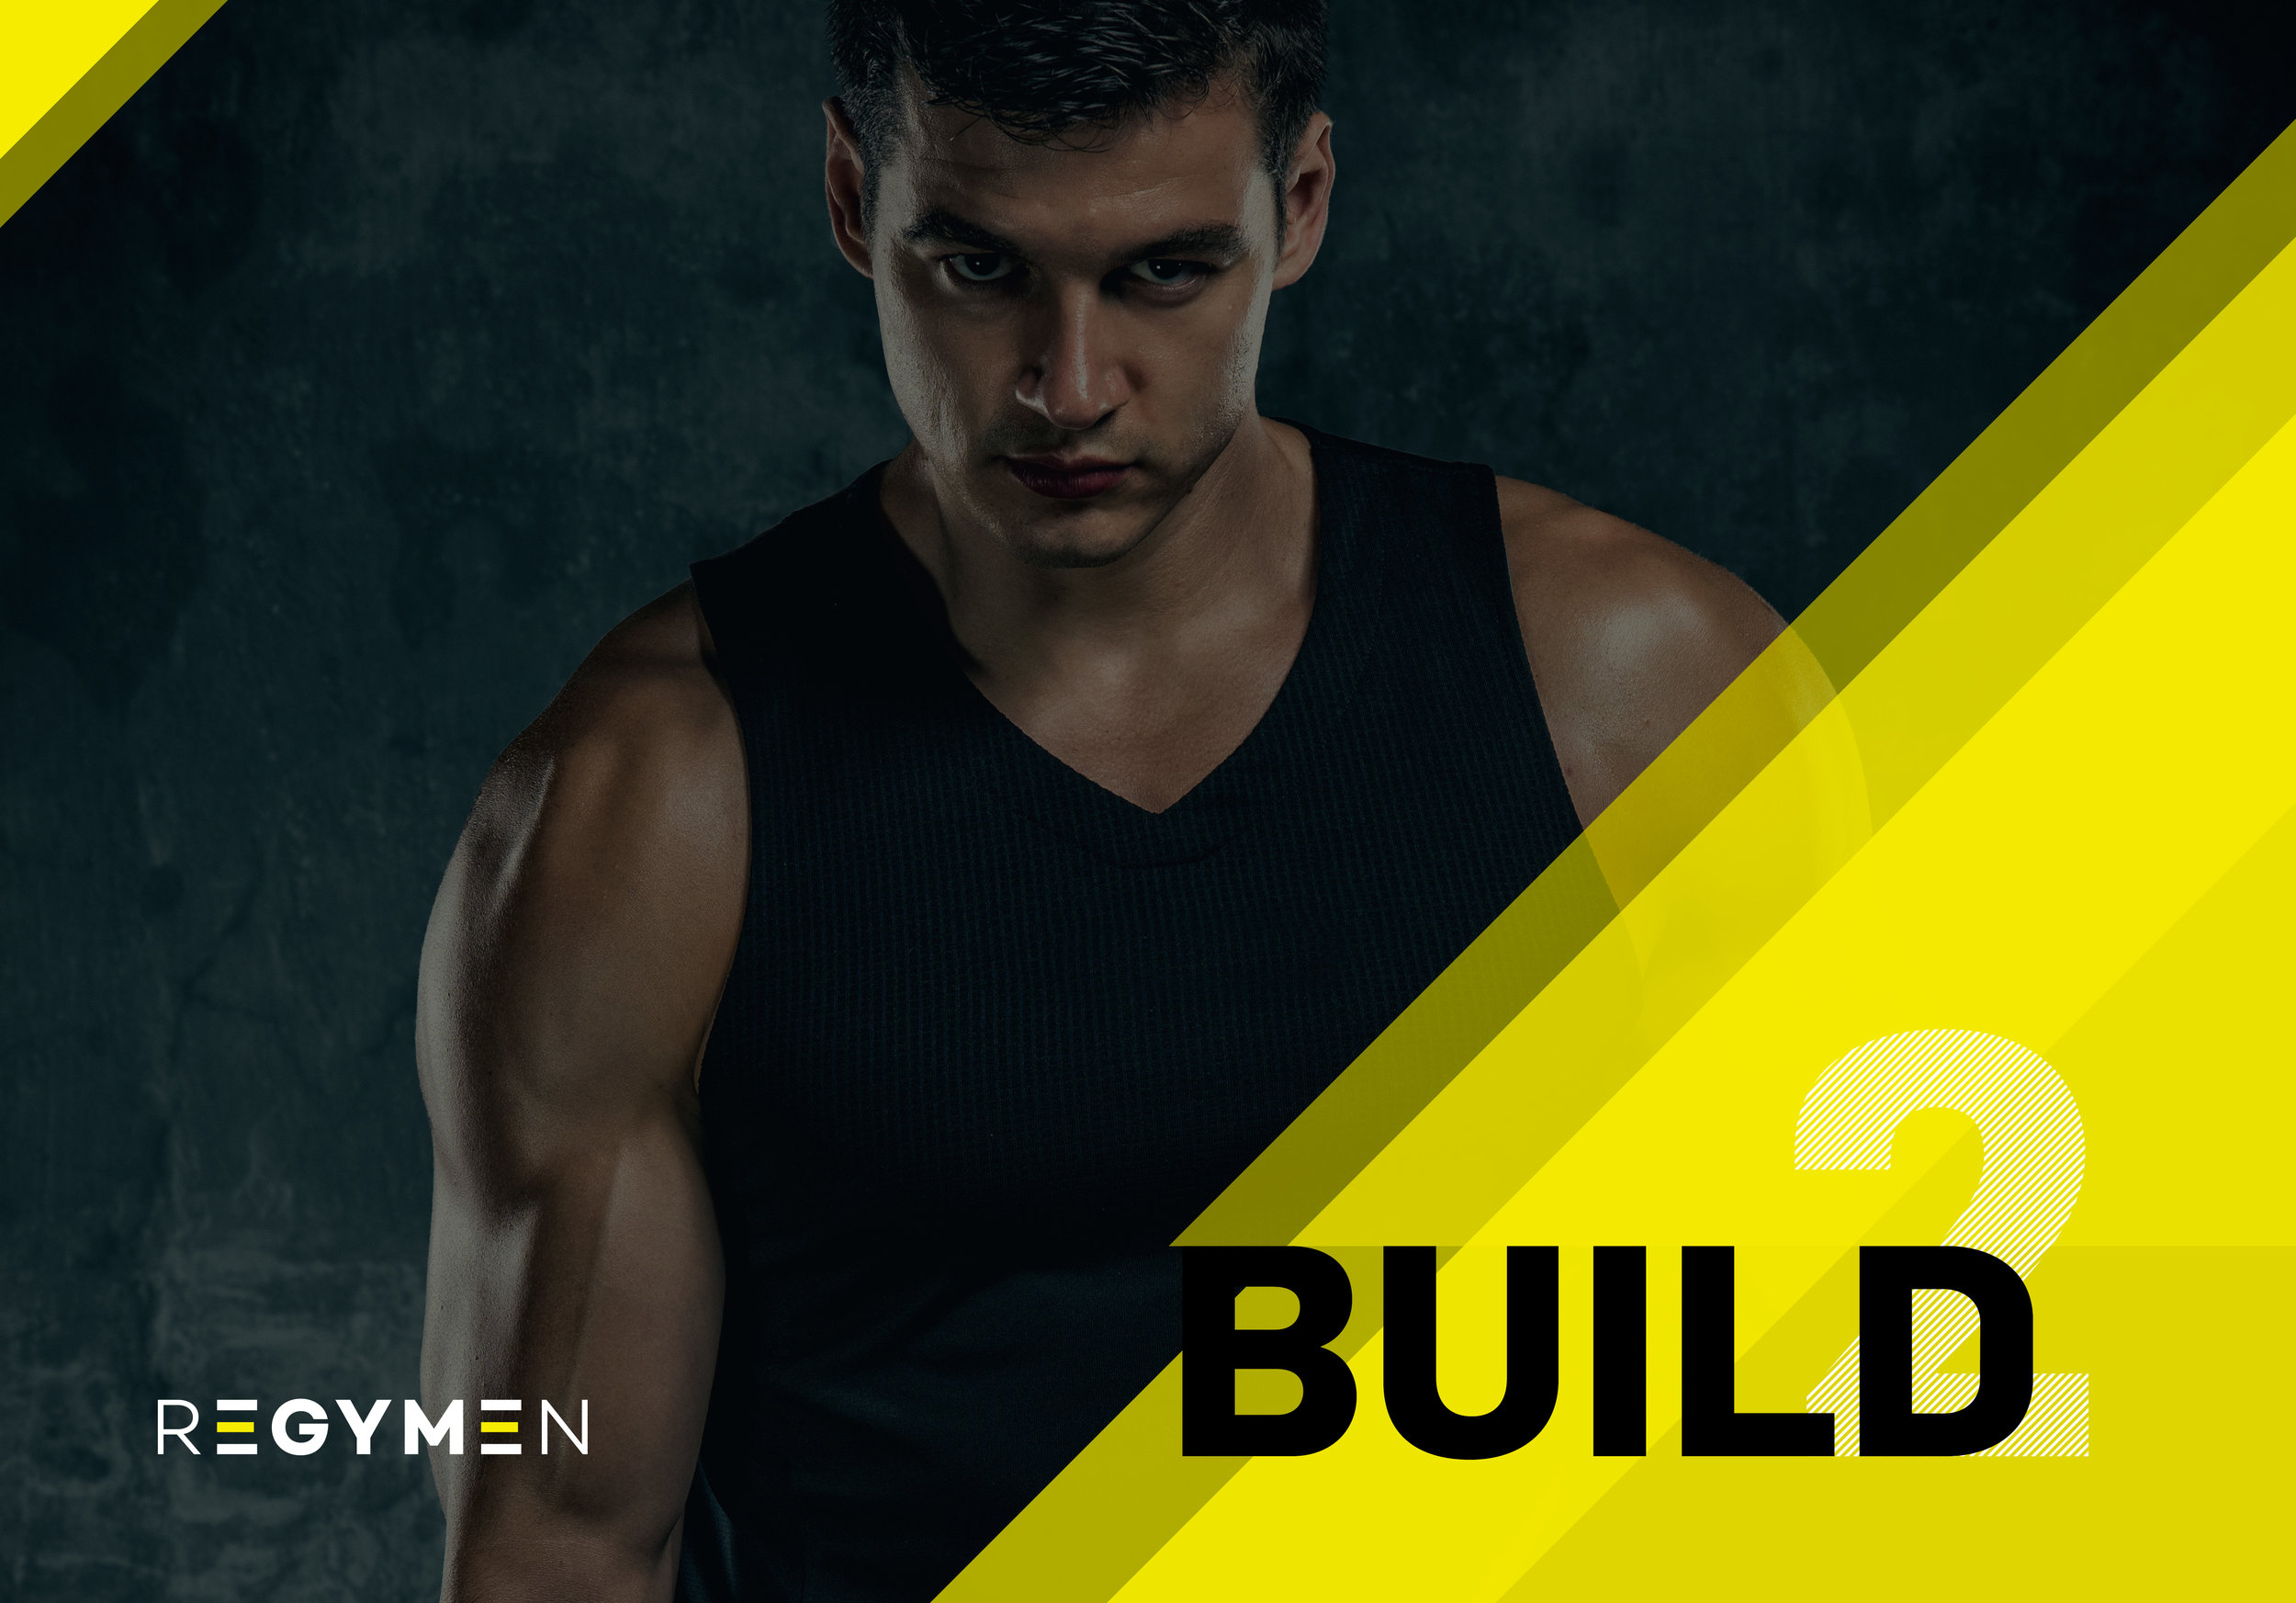 We'll switch your focus to power and strength in our BUILD workout. Get your blood pumping with Olympic barbells, bumper plates, battle ropes, Dumbbells, Kettlebells, Slamballs, CORMAX, and more. BUILD combines compound movements and explosive rounds of cardio (15-30 seconds) that strengthen your muscles and get your endorphins pumping.